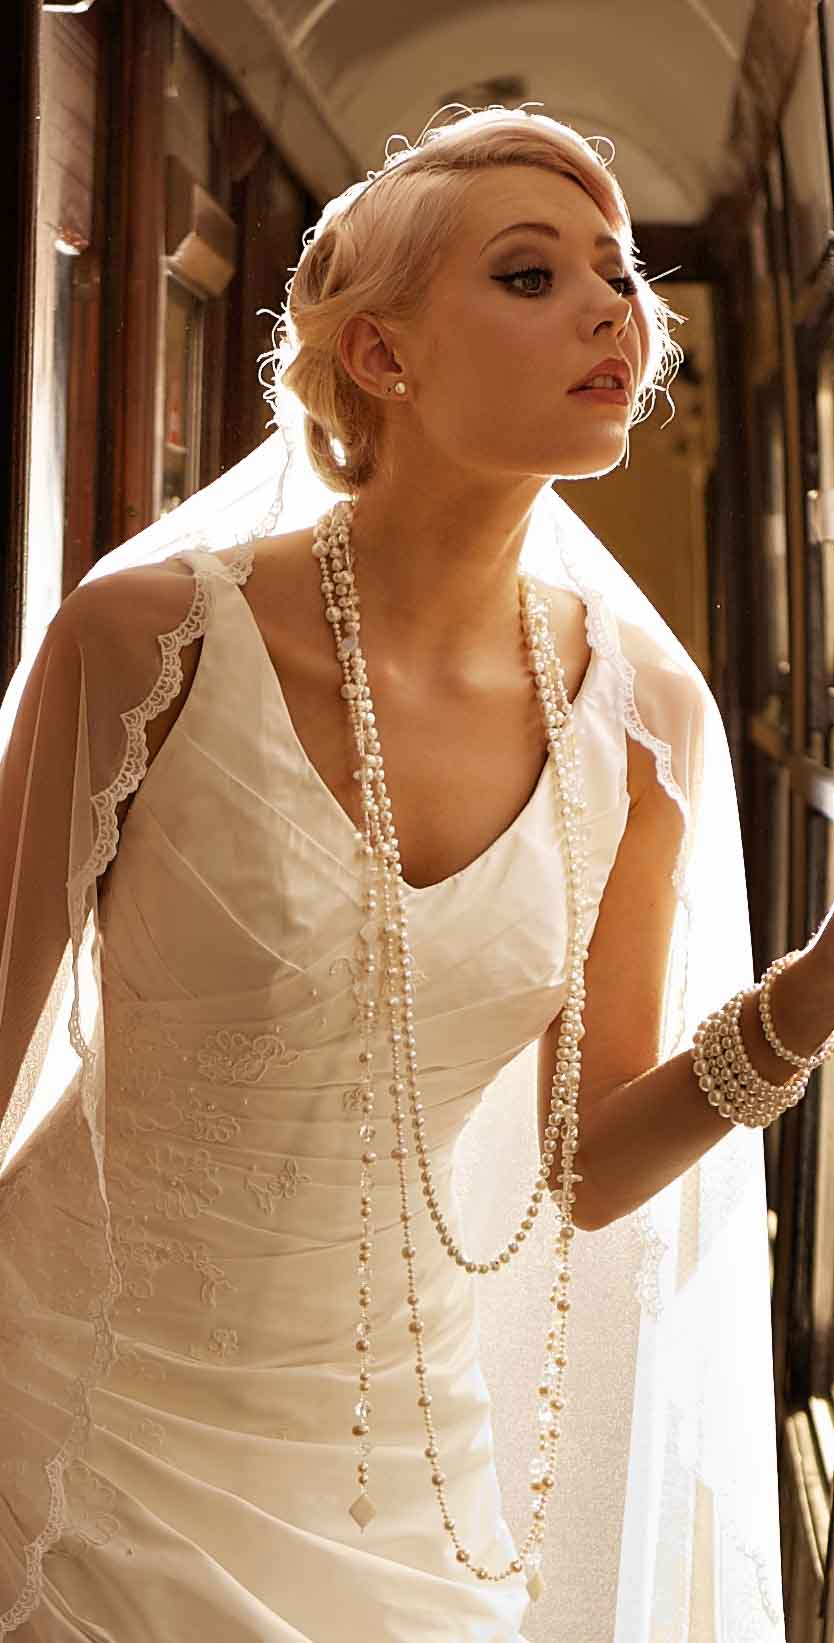 lariot-pearl-necklaces-on-model.jpg